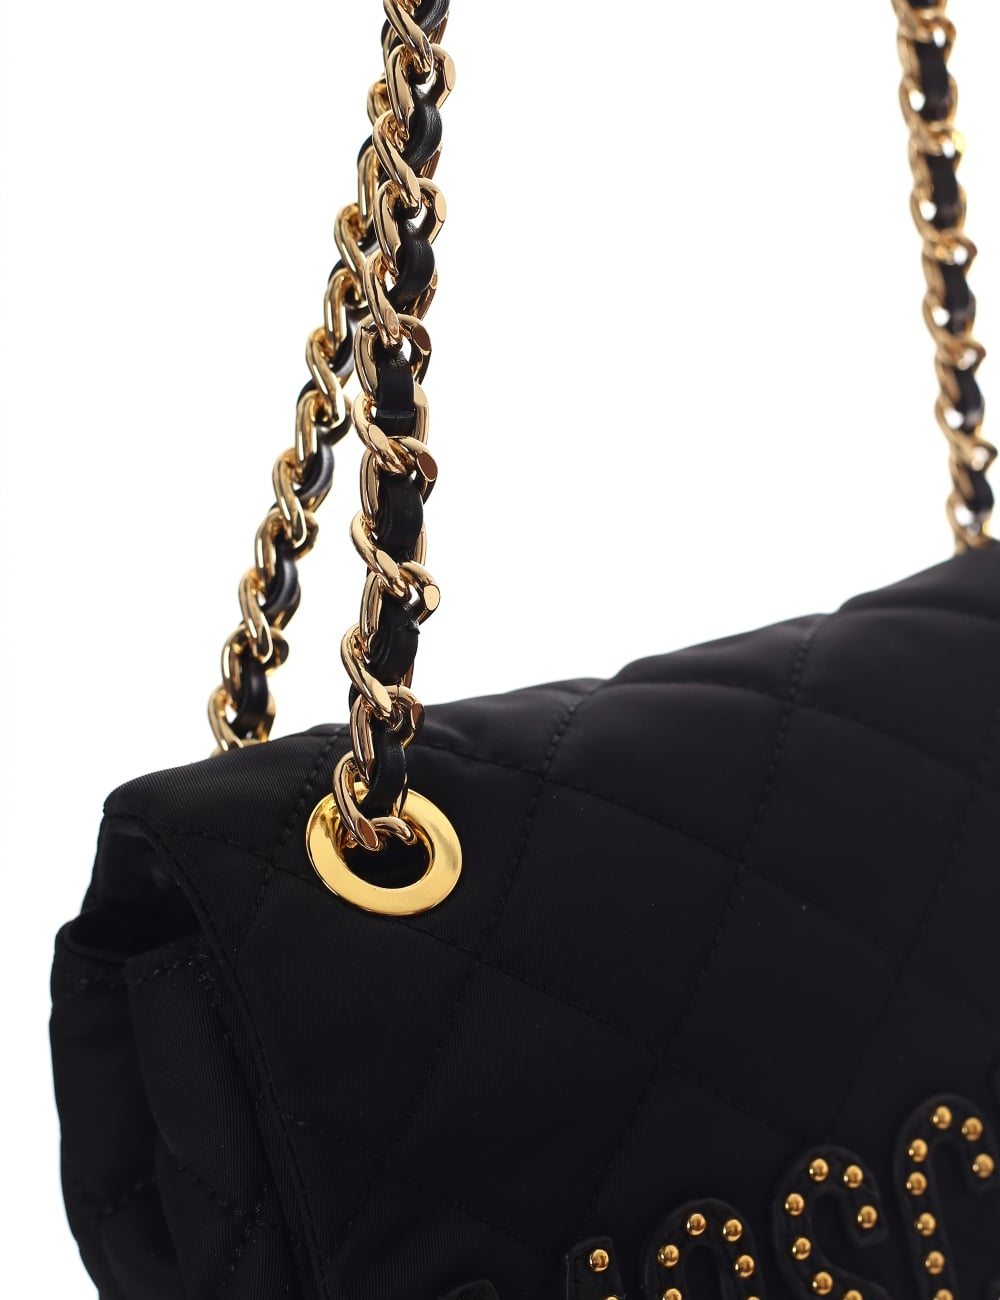 Moschino Women s Quilted Studded Shoulder Bag a3109d3488